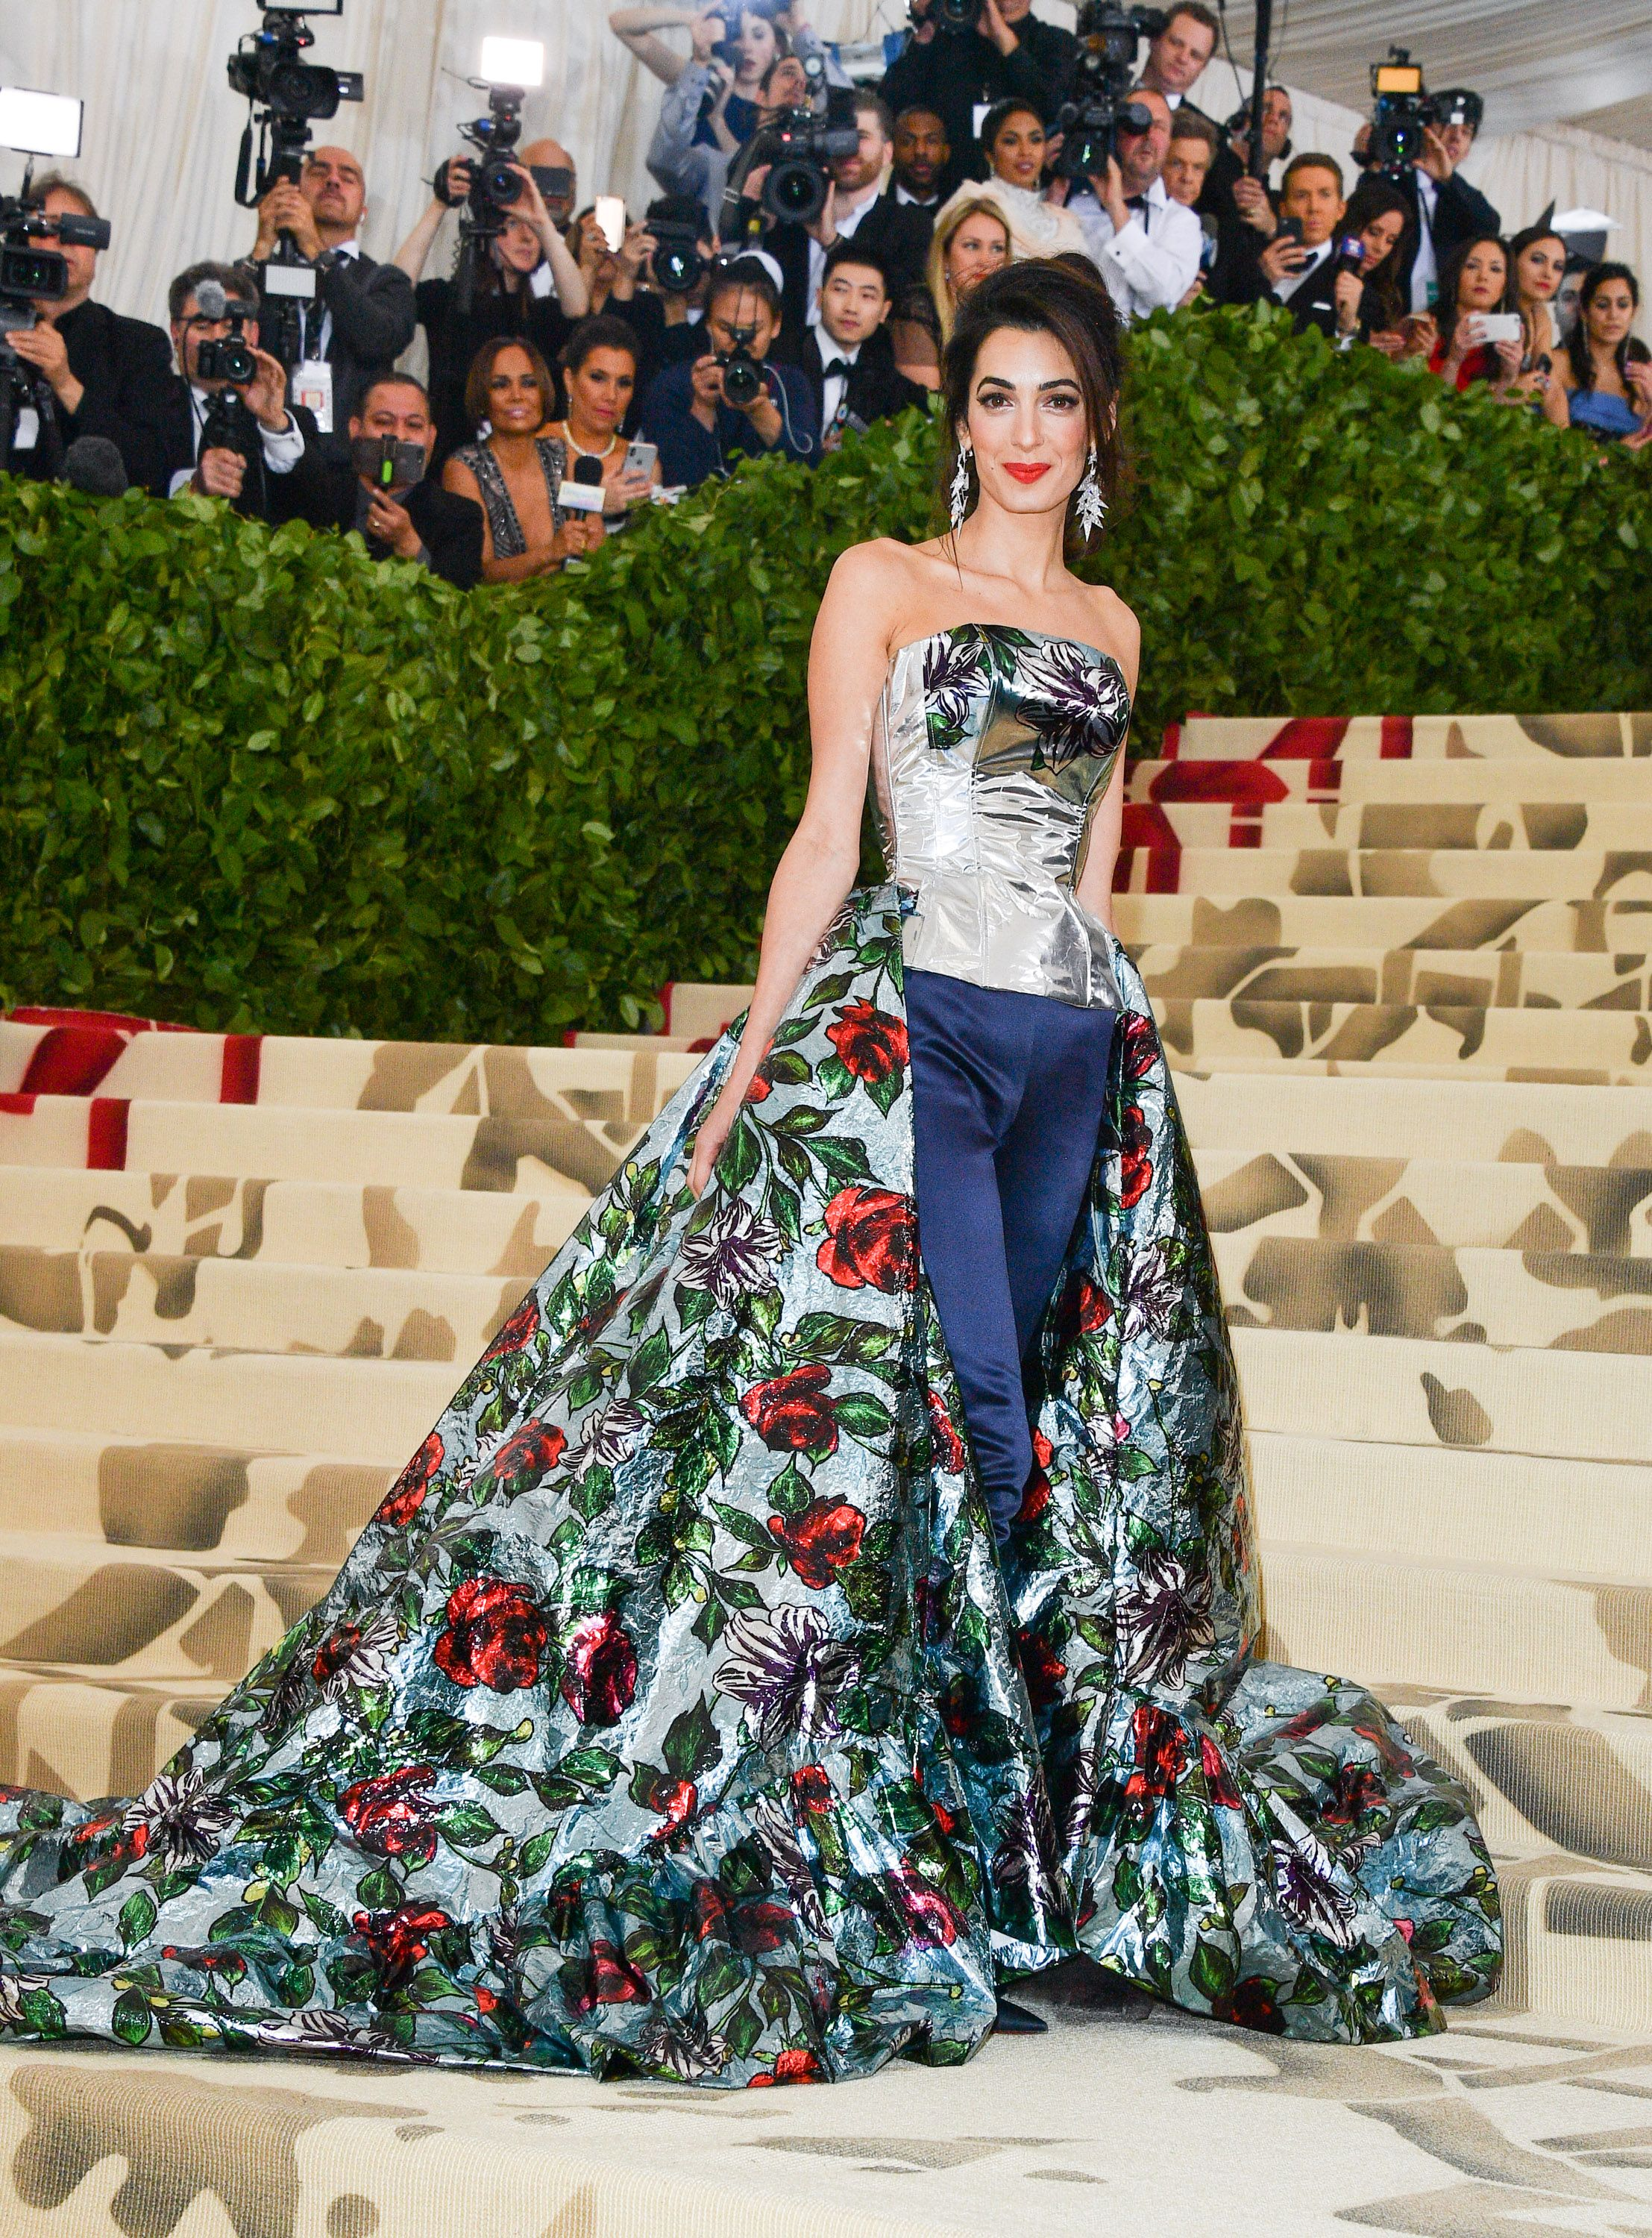 Clooney attended the 2018 Met Gala (for which she was a chairwoman) in a romantic Richard Quinn ensemble that included satin pants and a full rosebud printed skirt